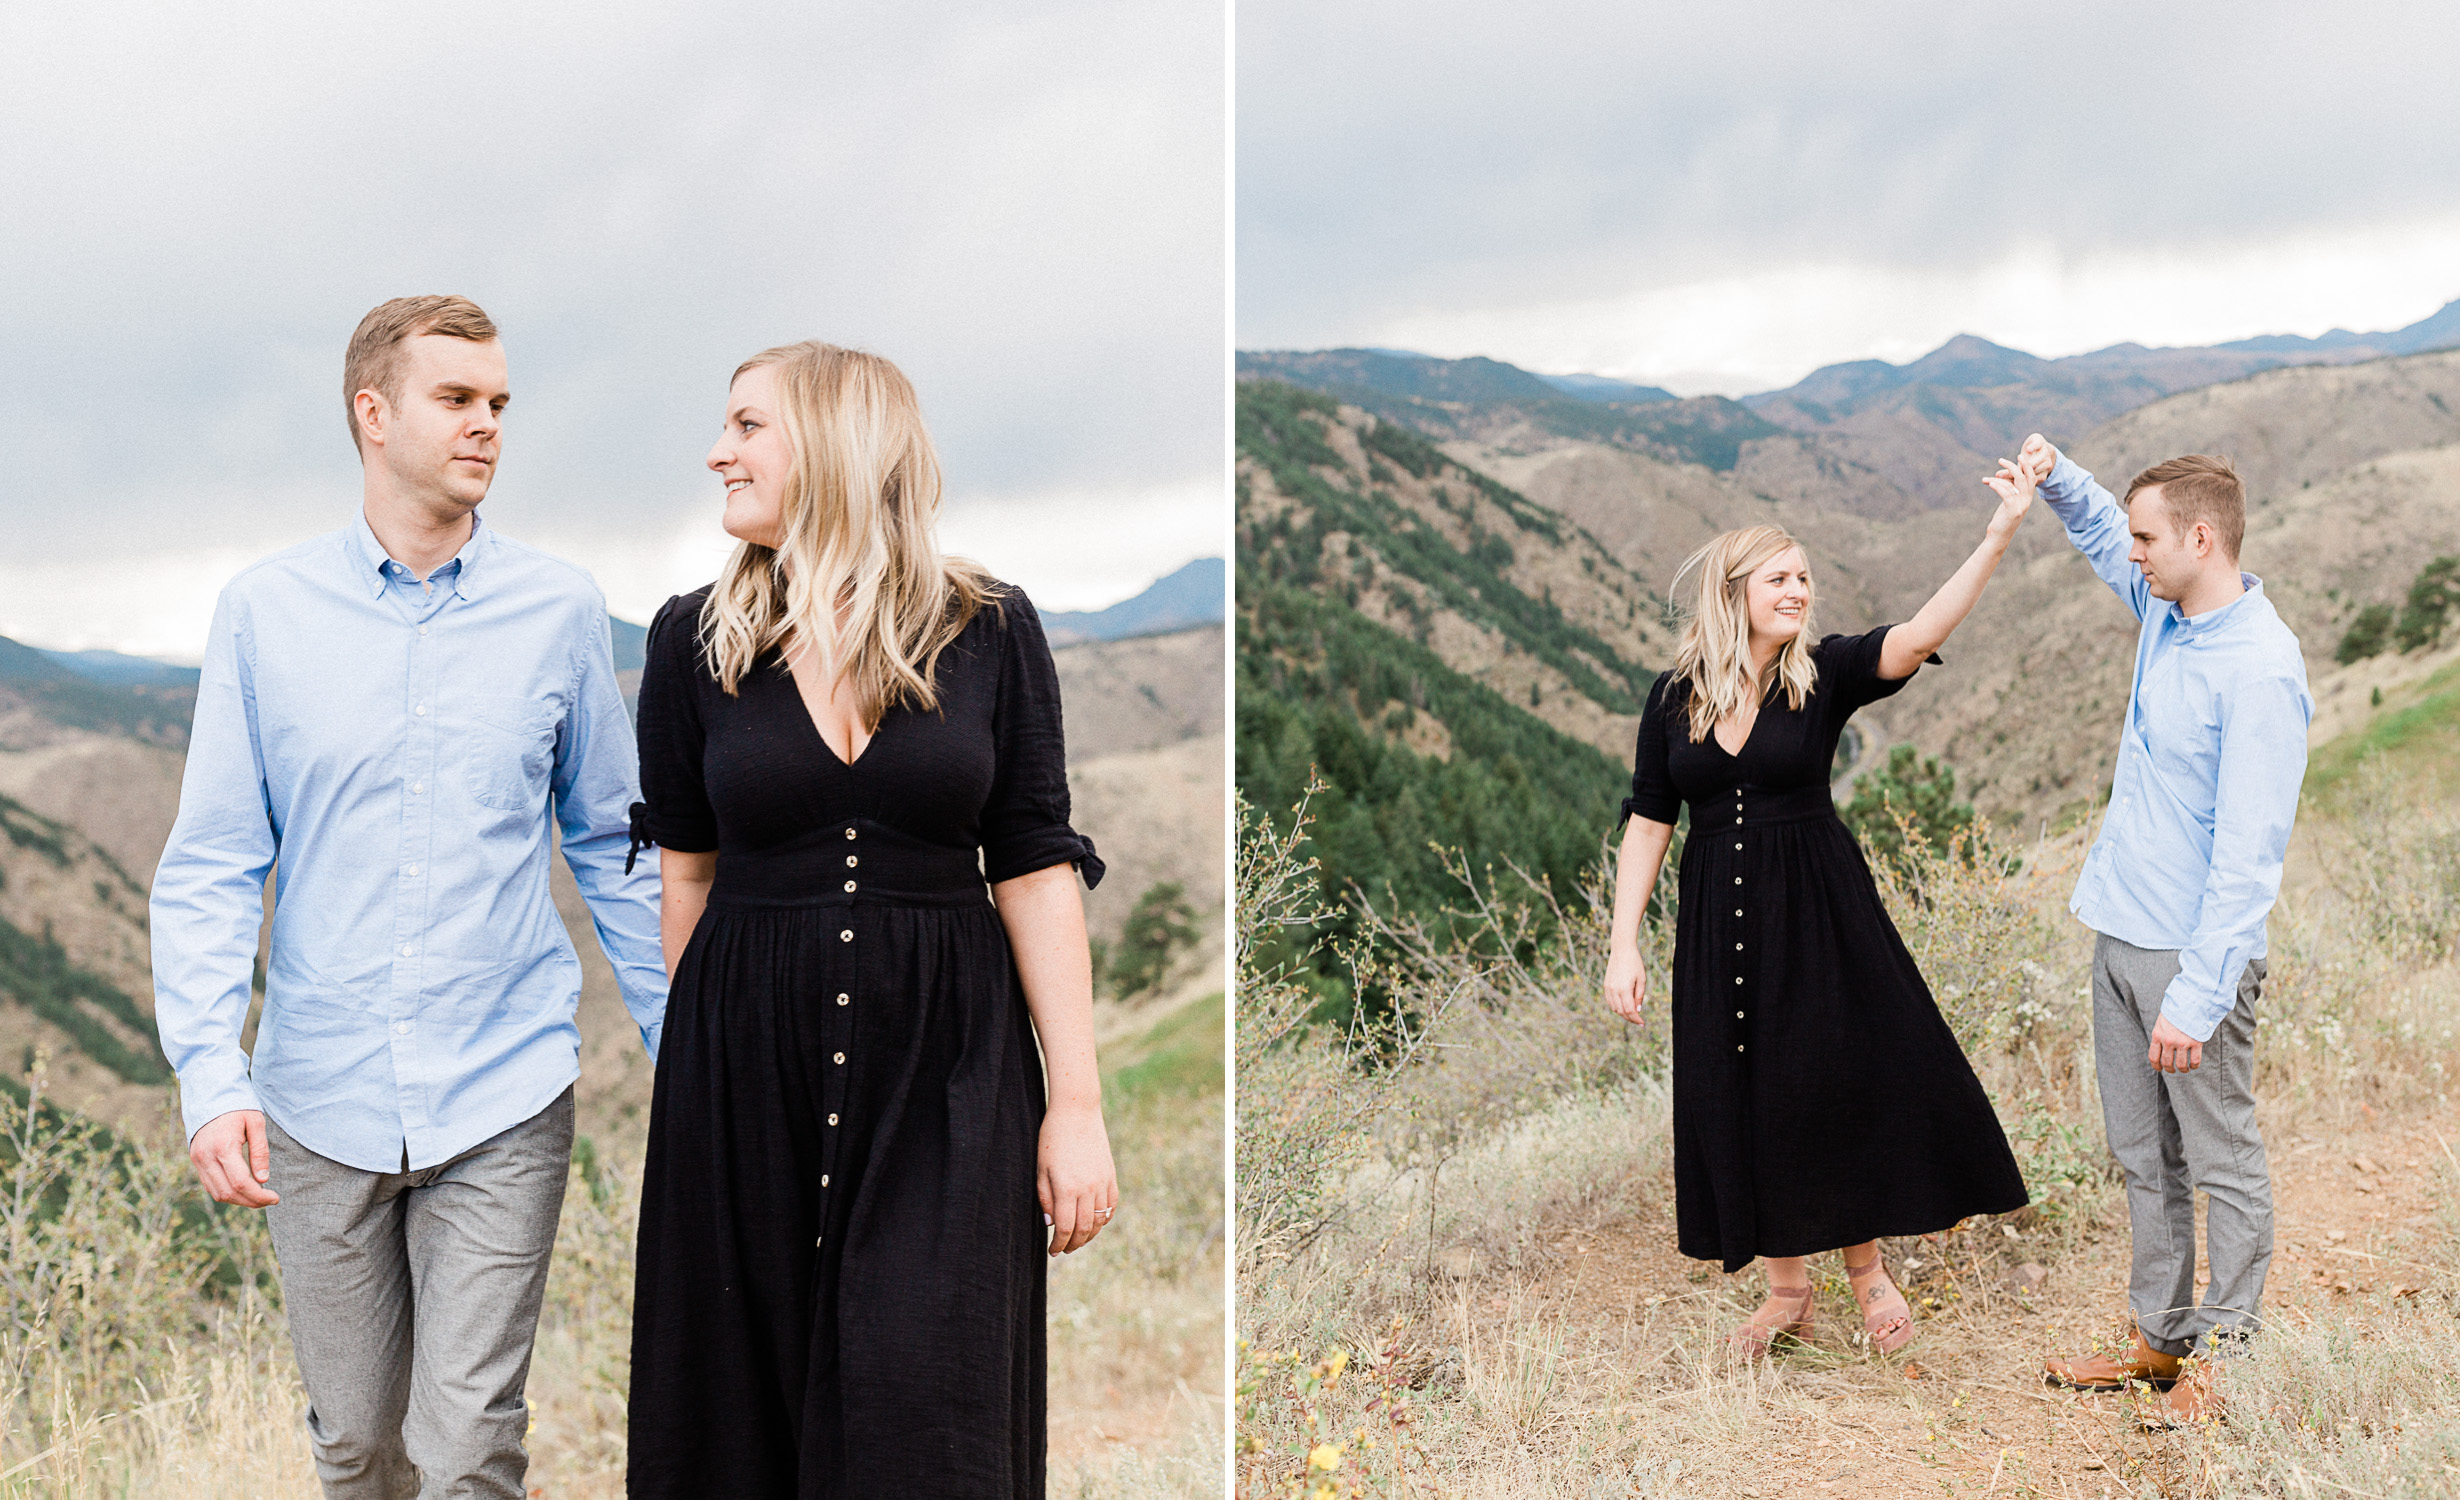 Dorothy_Louise_Photography_Gennie_Sean_Engagement5.jpg